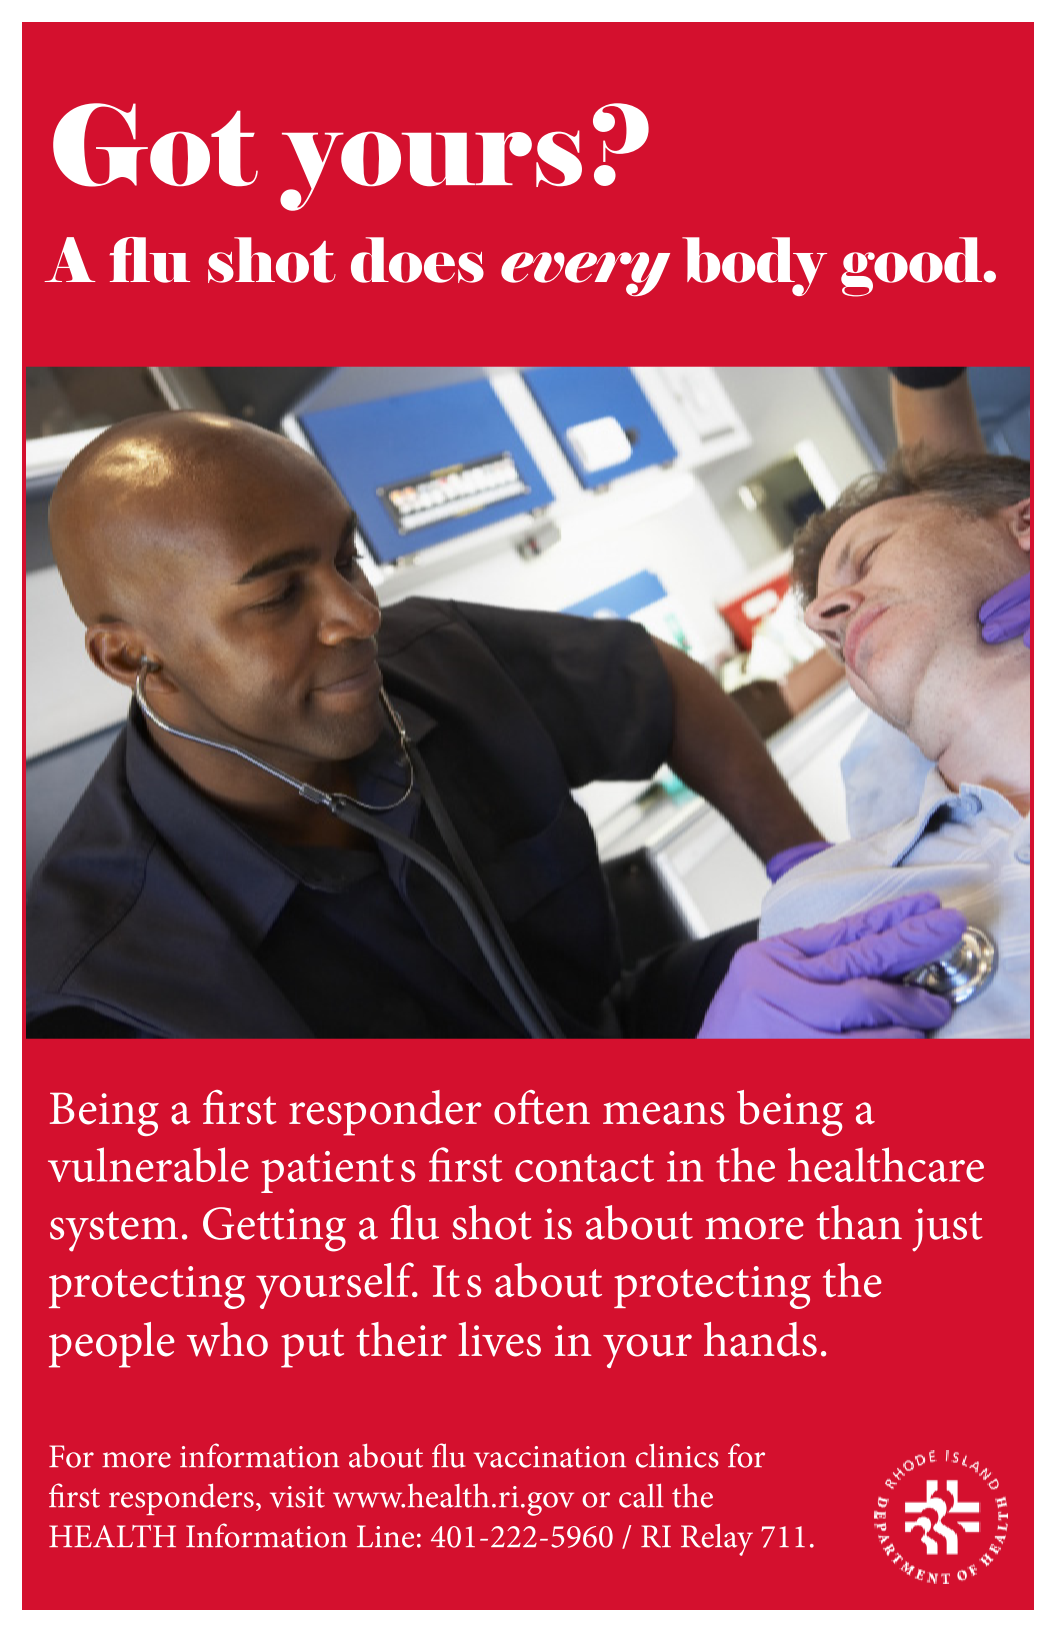 Flu vaccination - First Responders (protect your patients)